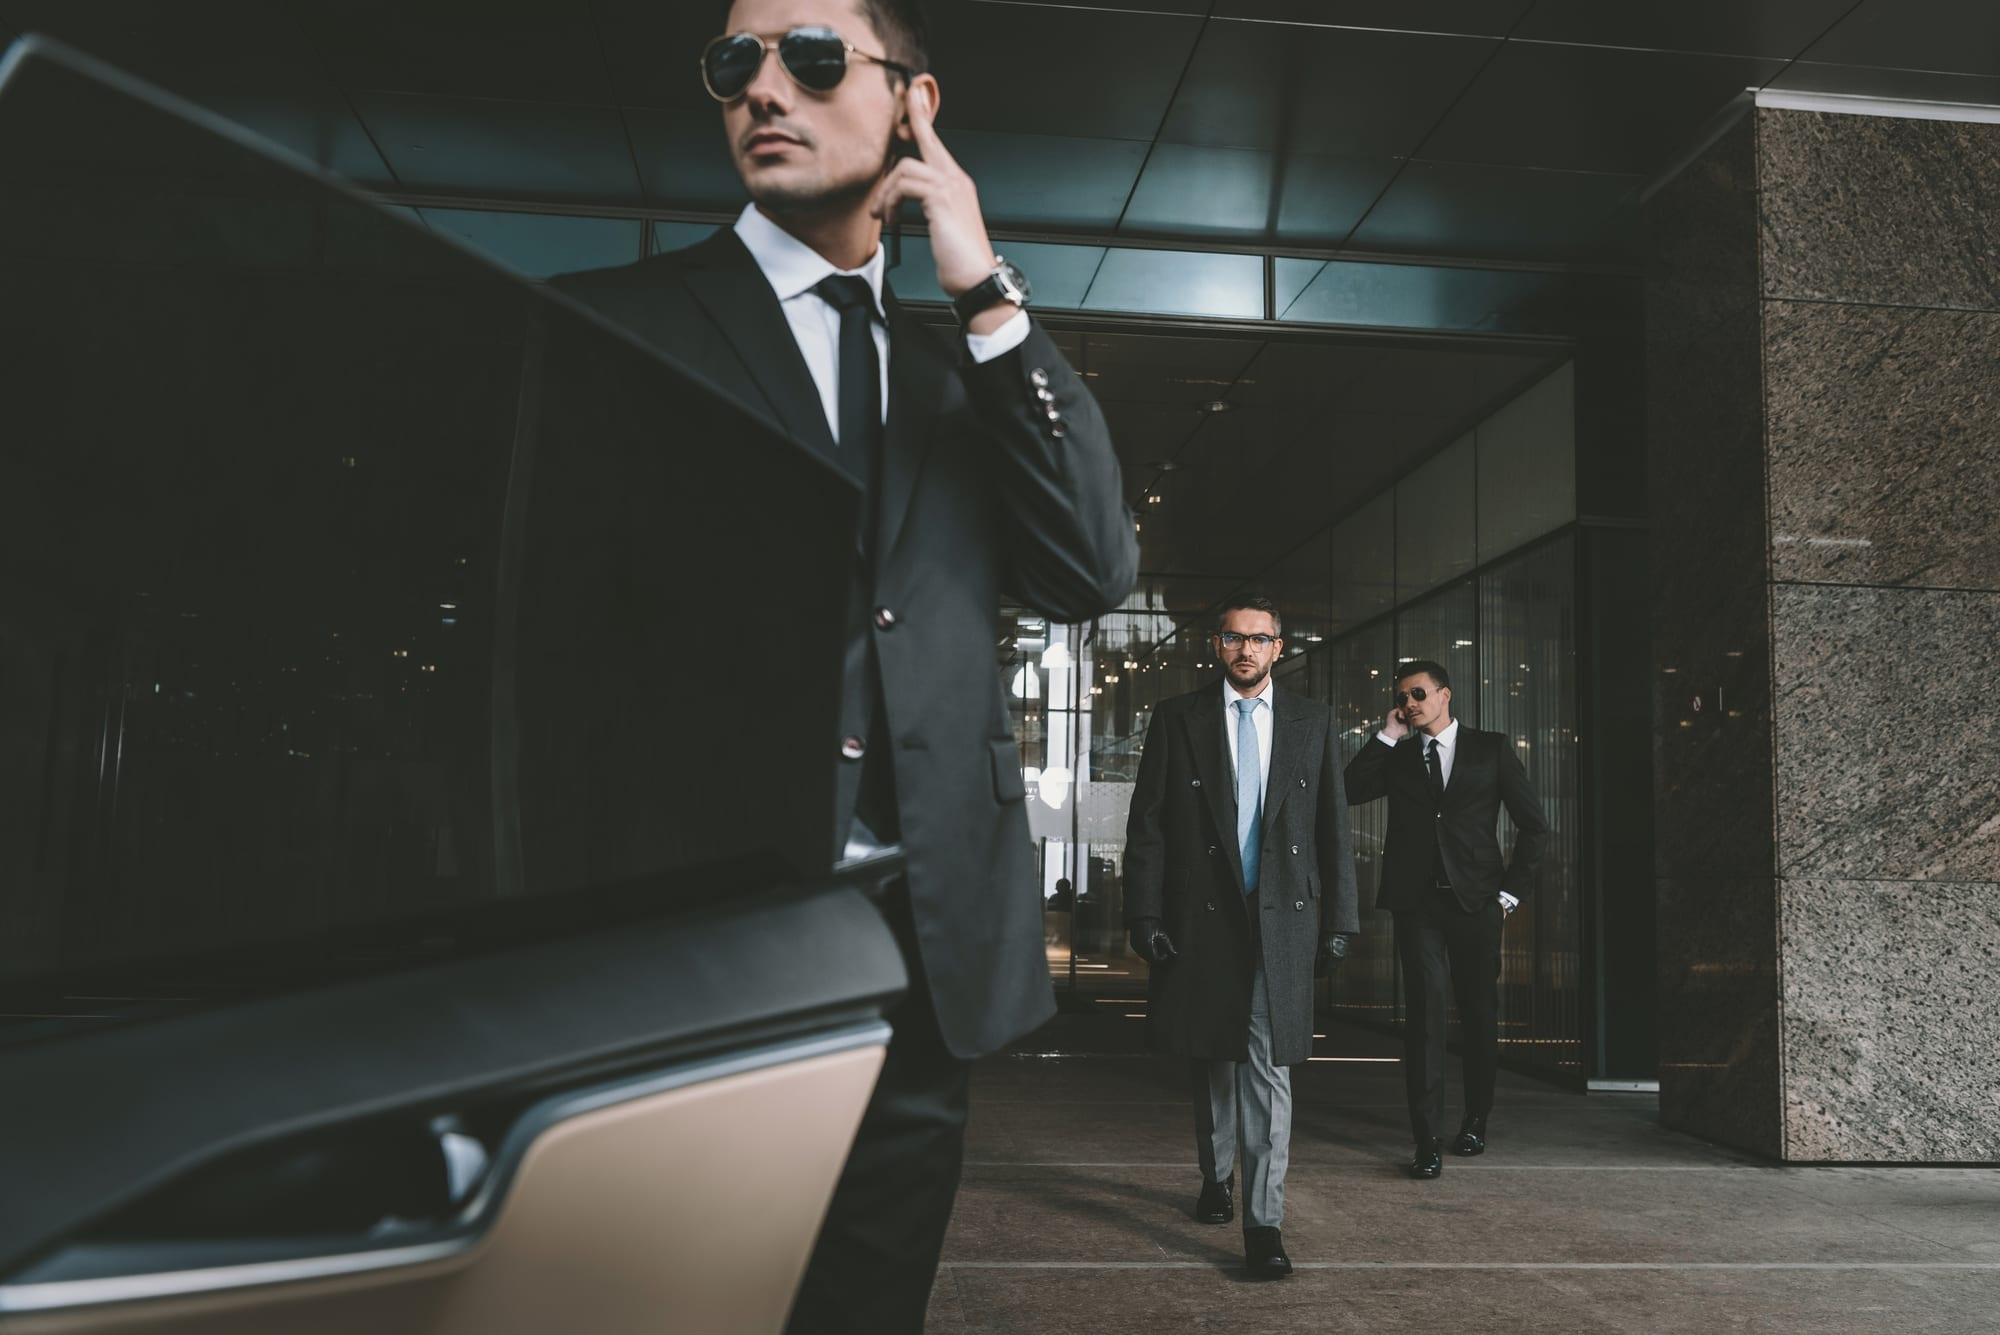 Executive Protection Services For Hire in San Jose, CA